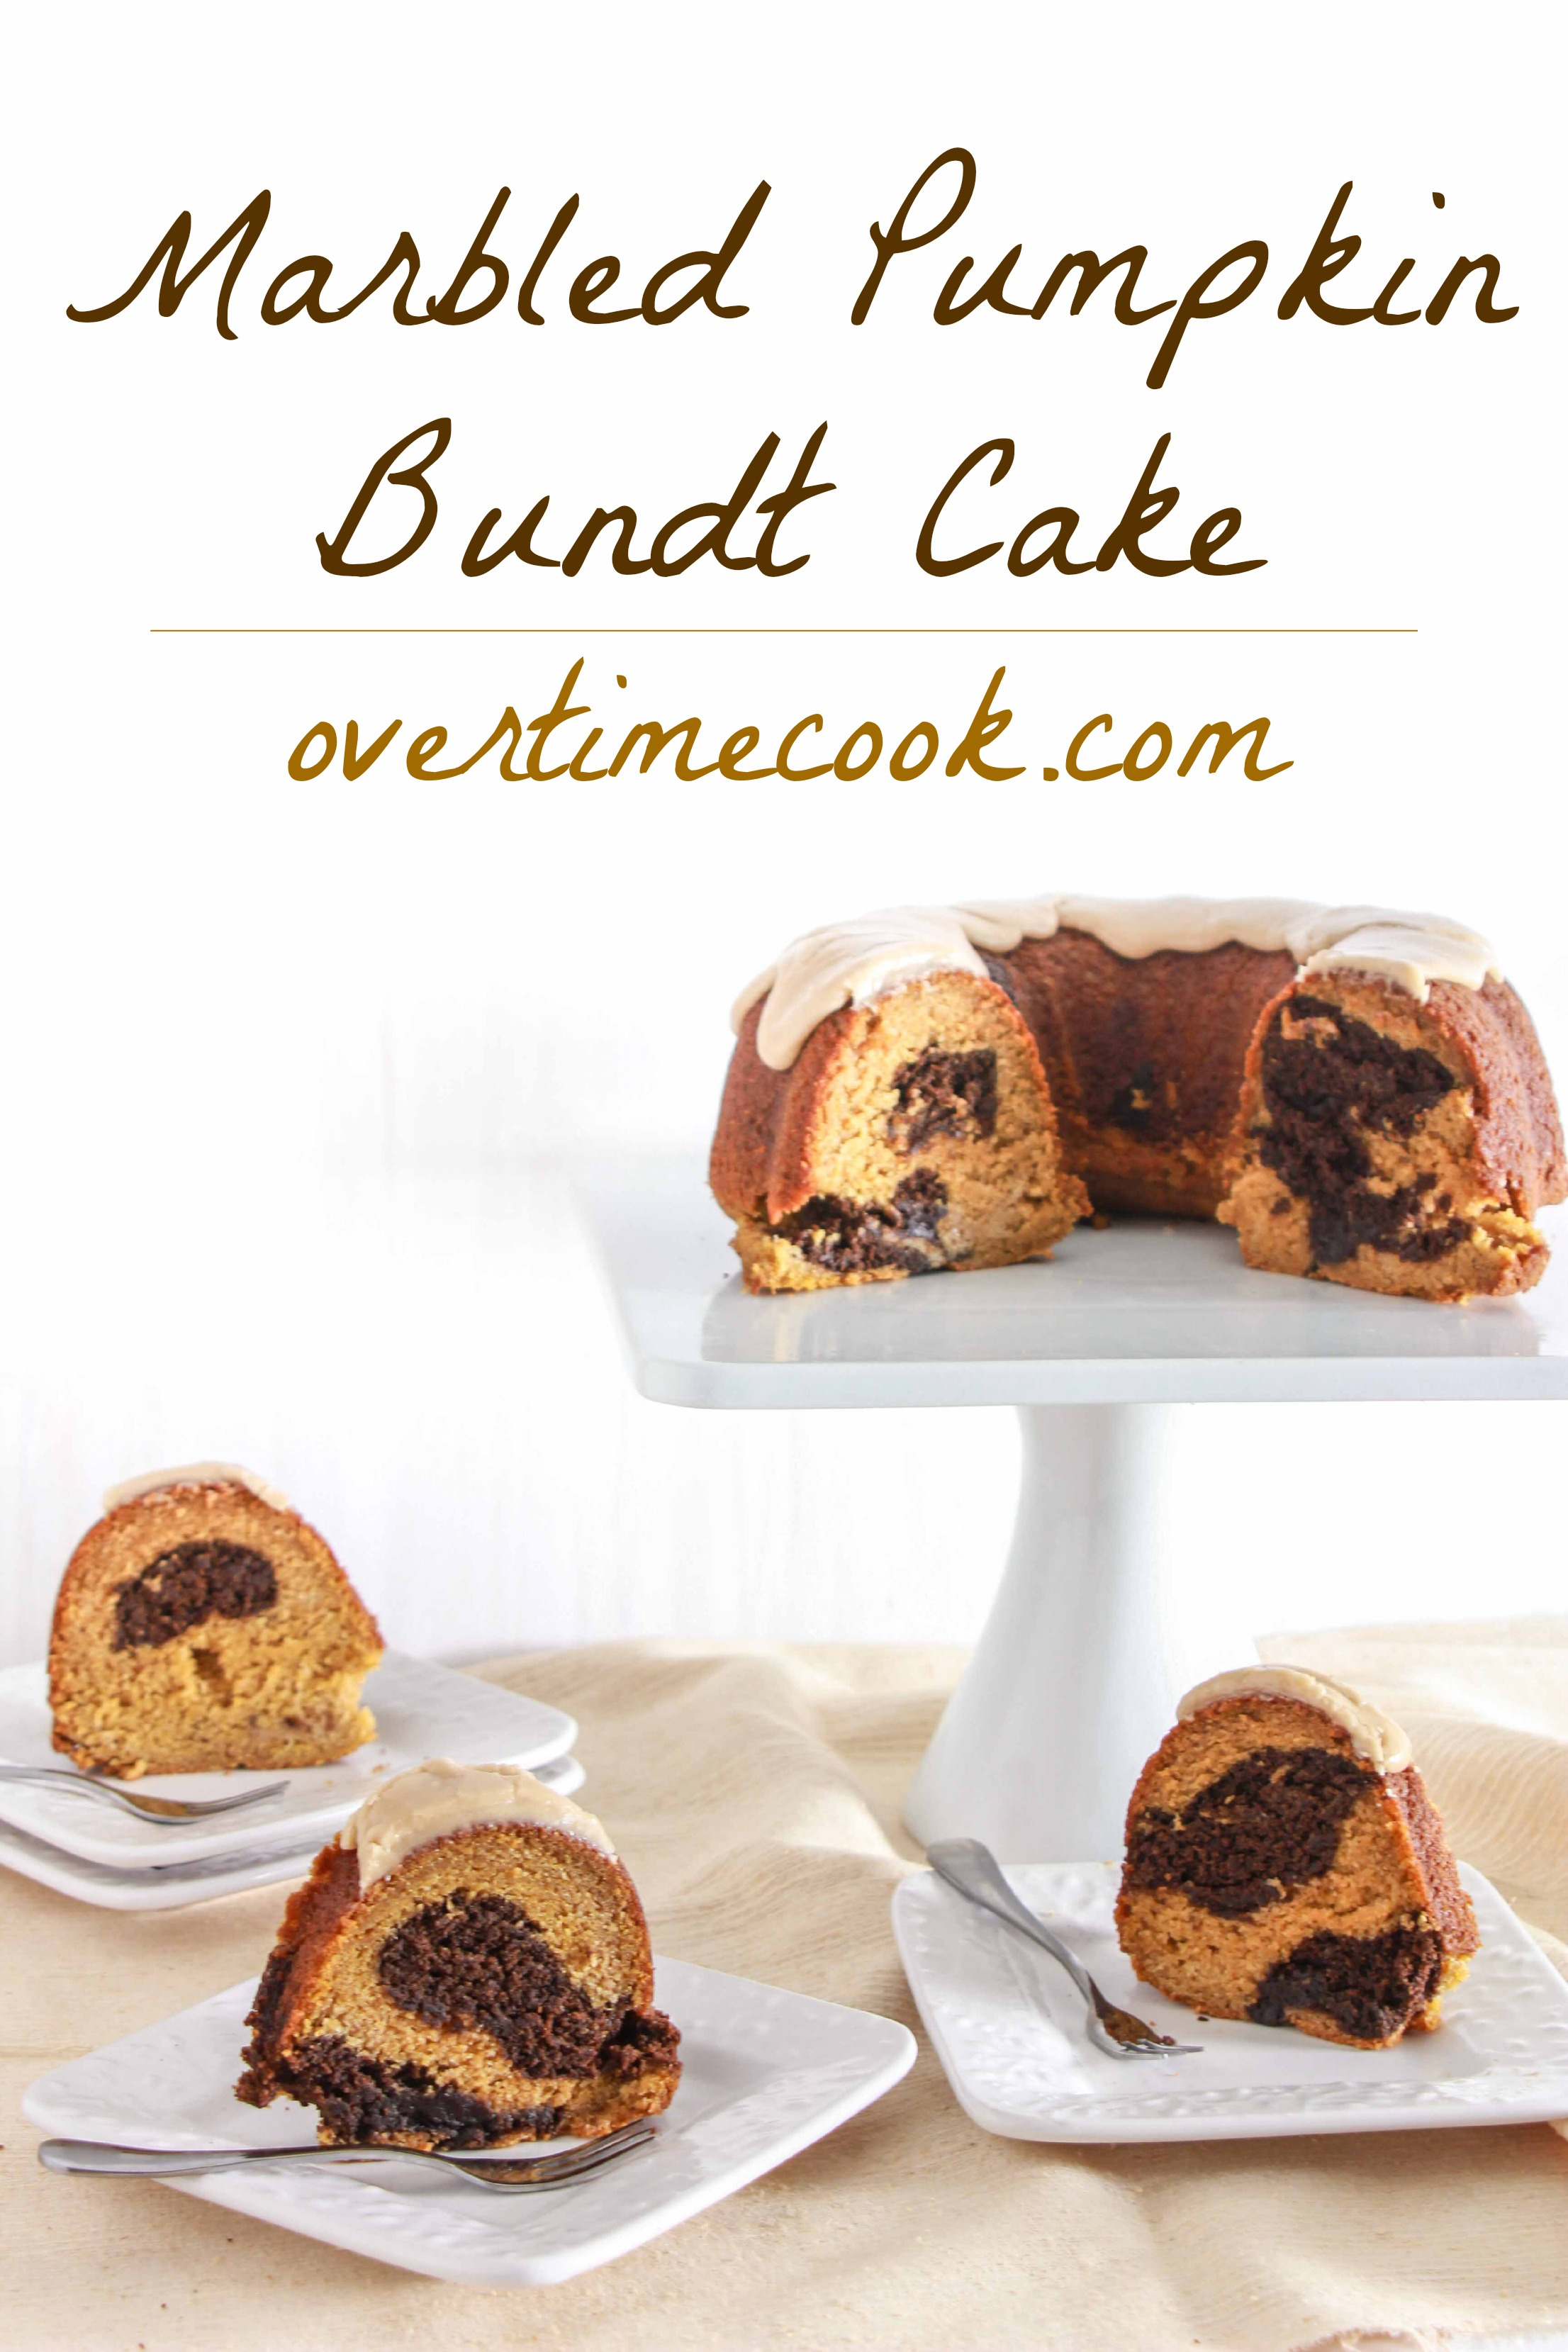 Marbled Pumpkin Bundt Cake on OvertimeCook